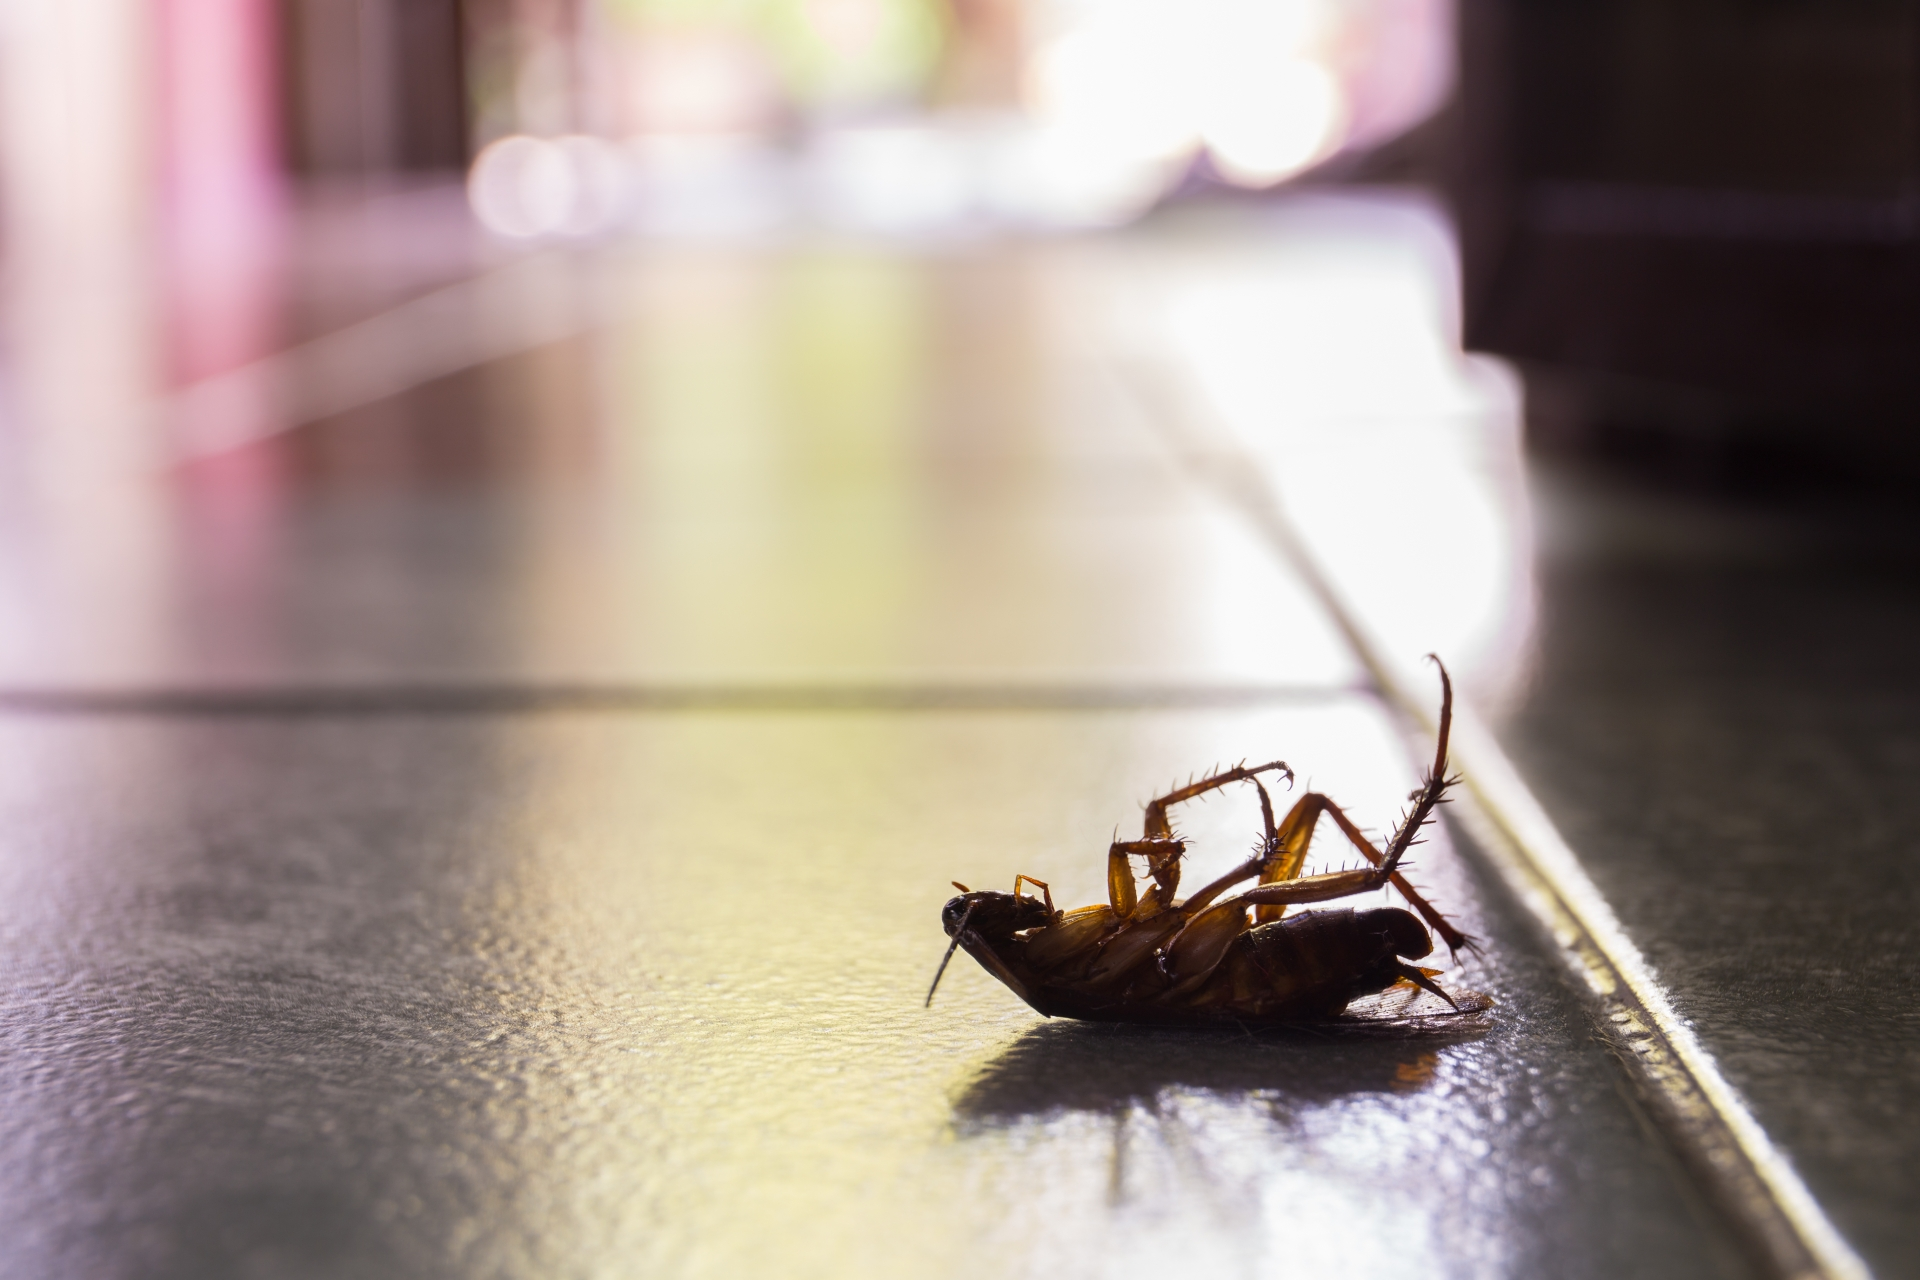 Cockroach Control, Pest Control in Hillingdon, Ickenham, UB10. Call Now 020 8166 9746